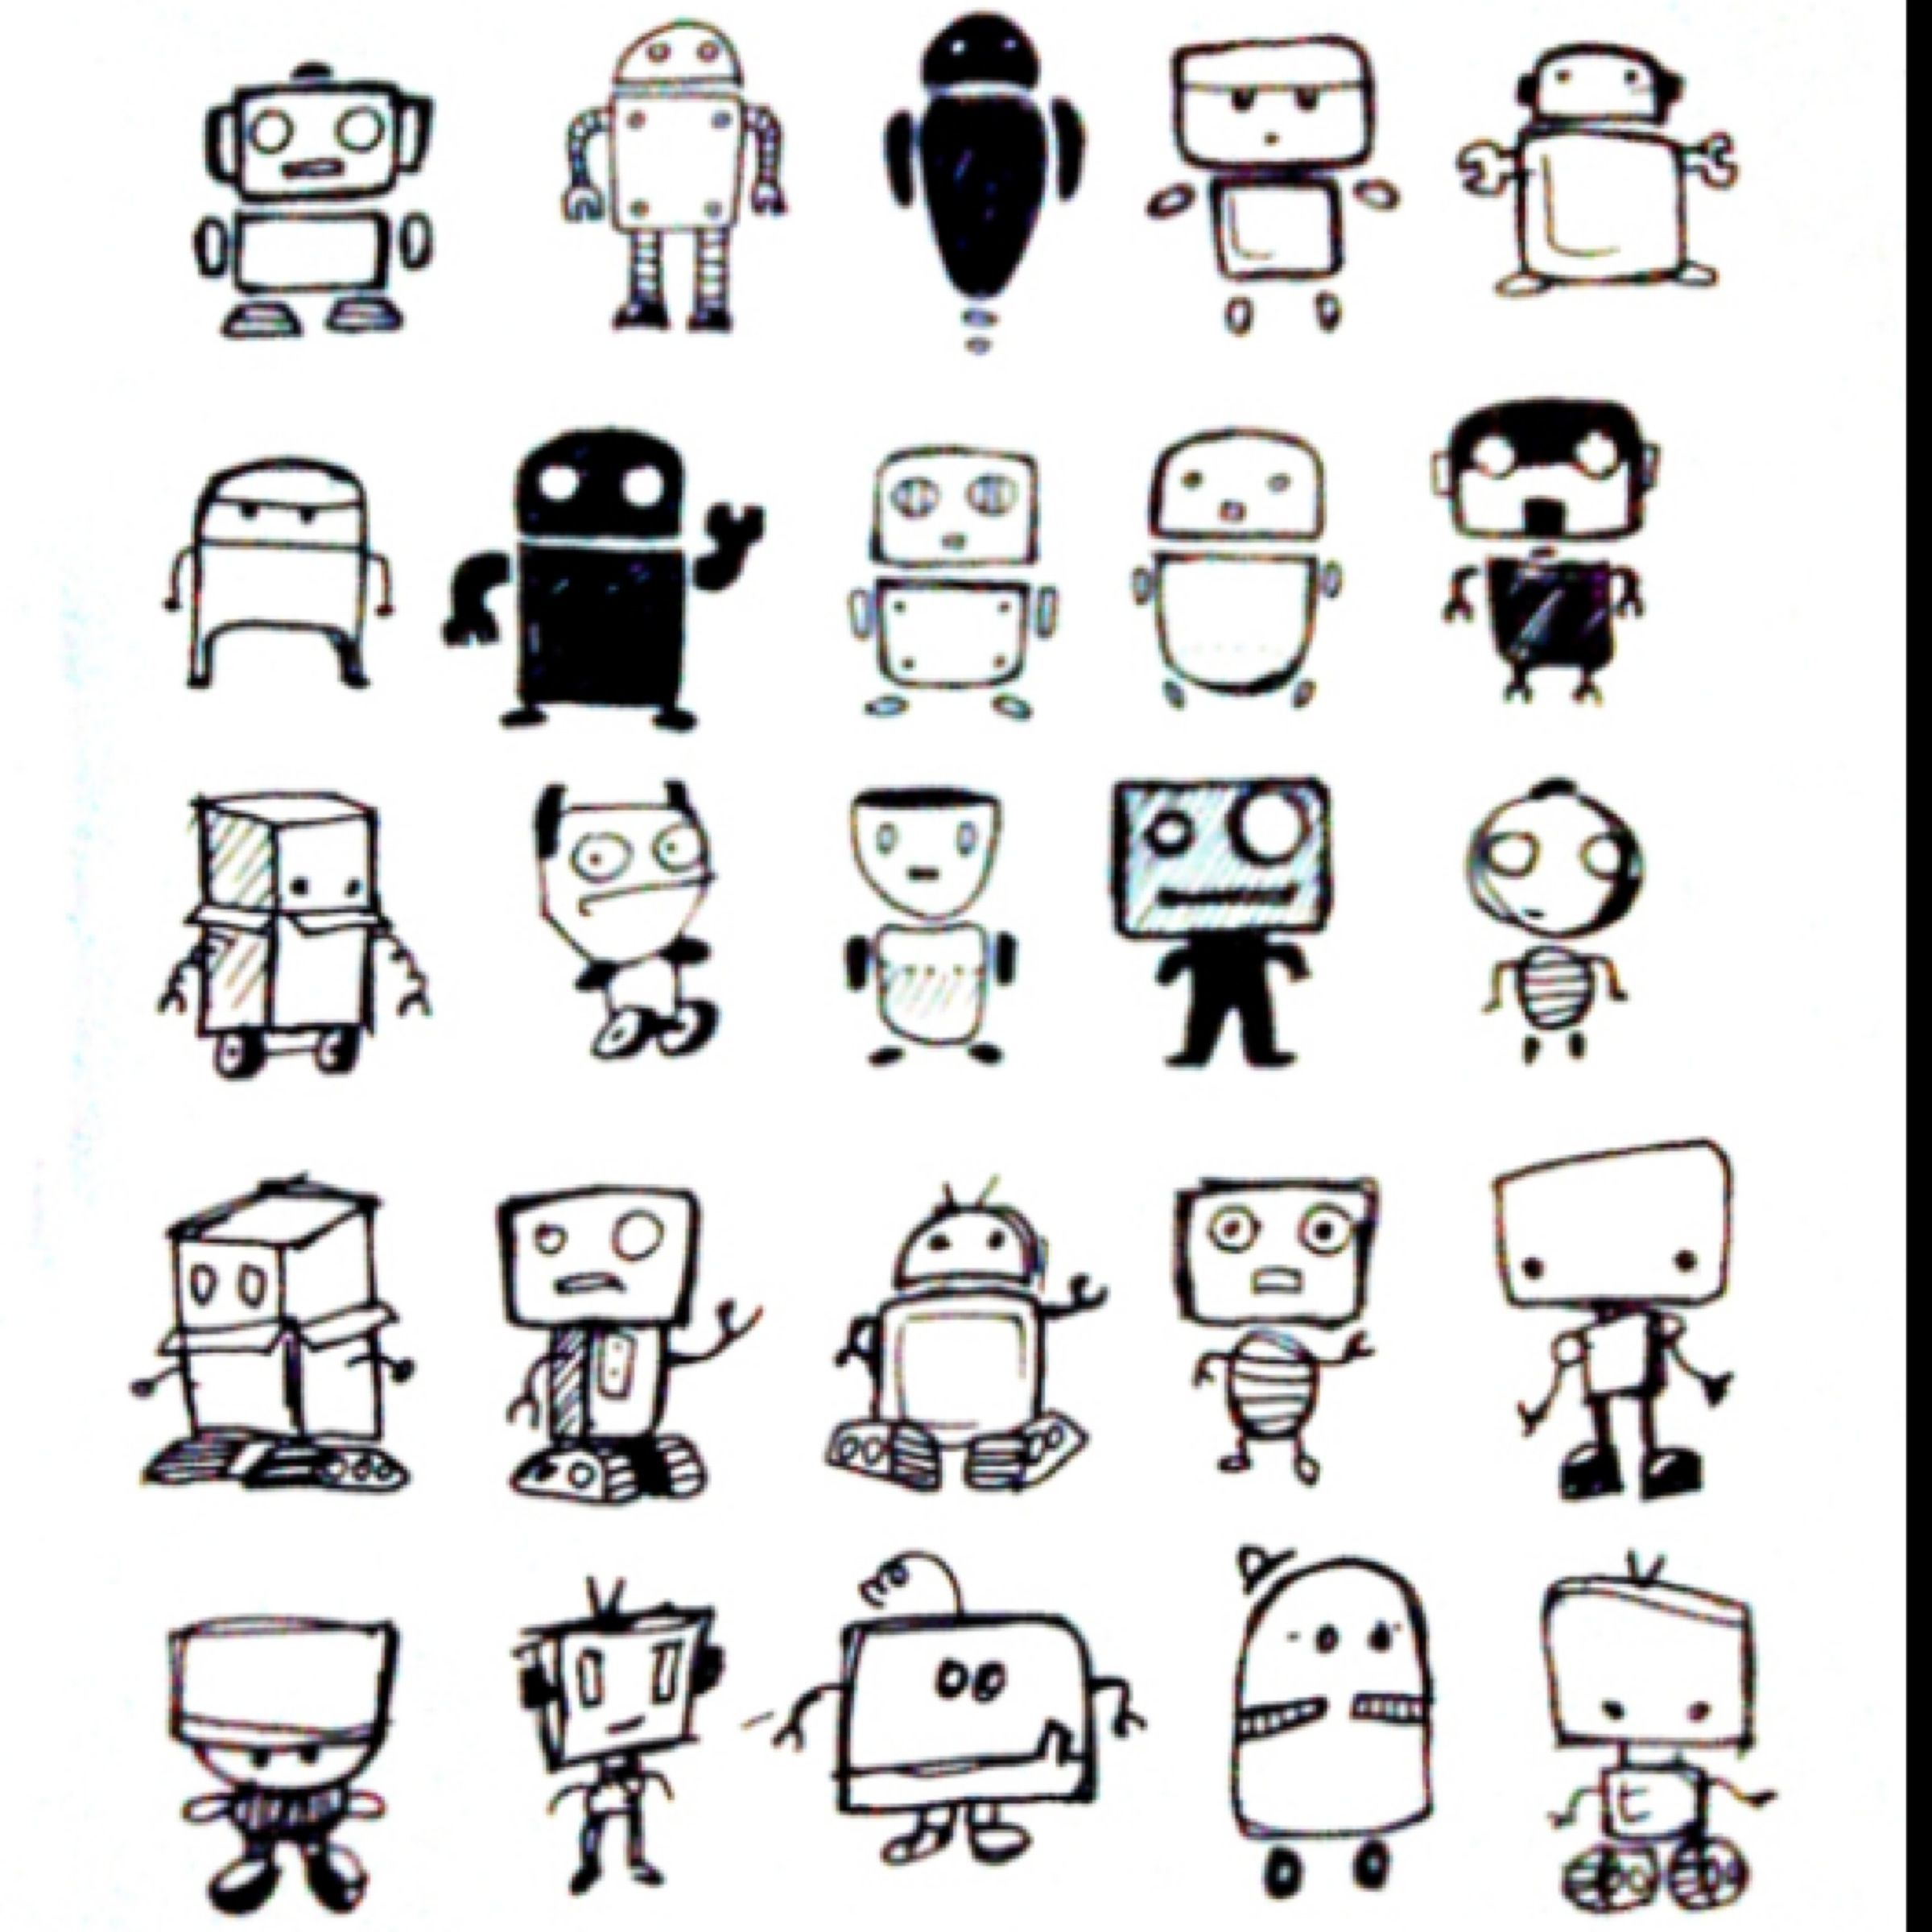 Cute Robot Sketches Illustrations Doodle Art Doodles Robots